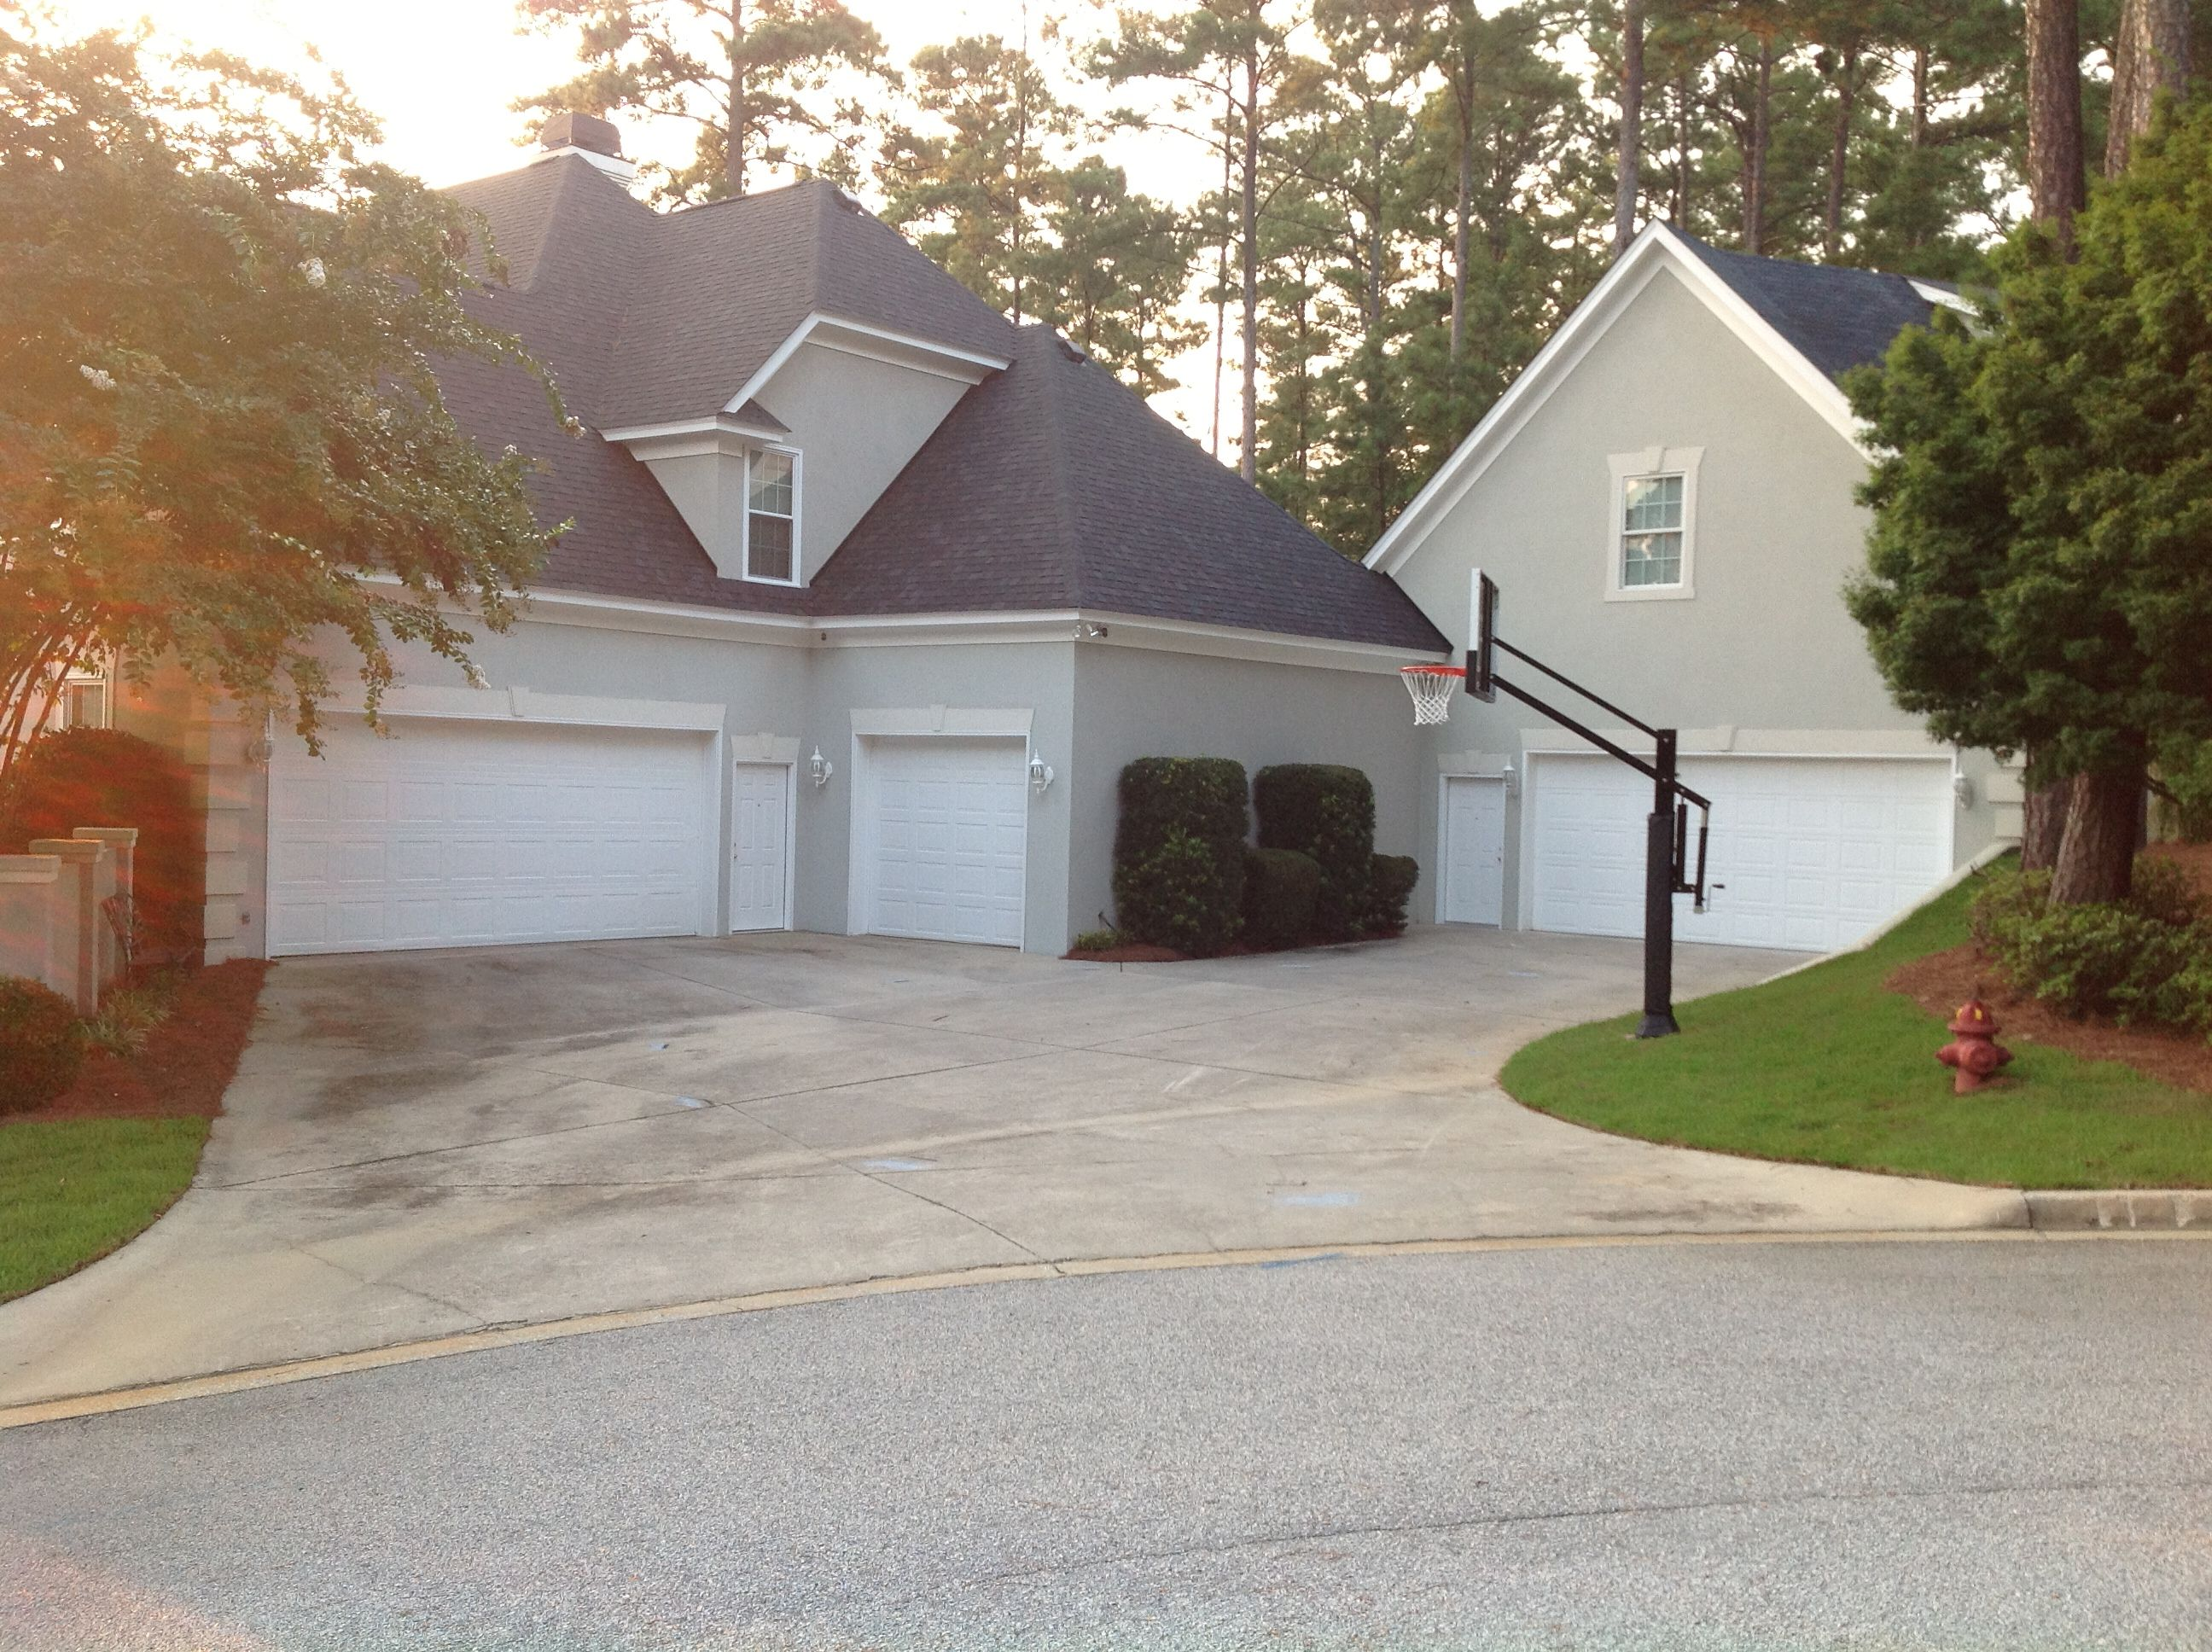 front yard hoop in the driveway the 3 car garage is definitely not